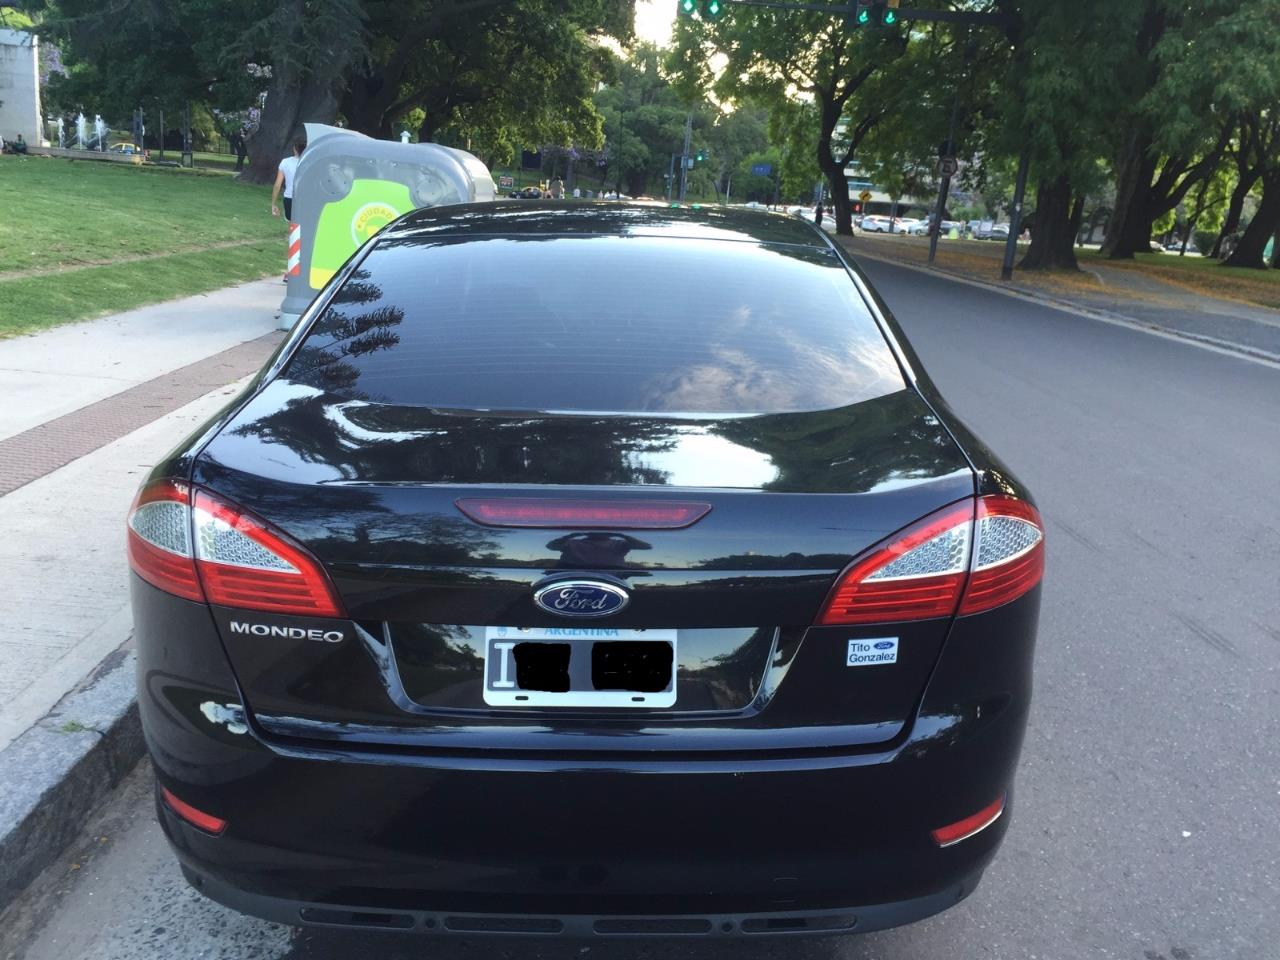 Ford Mondeo 2.3 2010 photo - 11